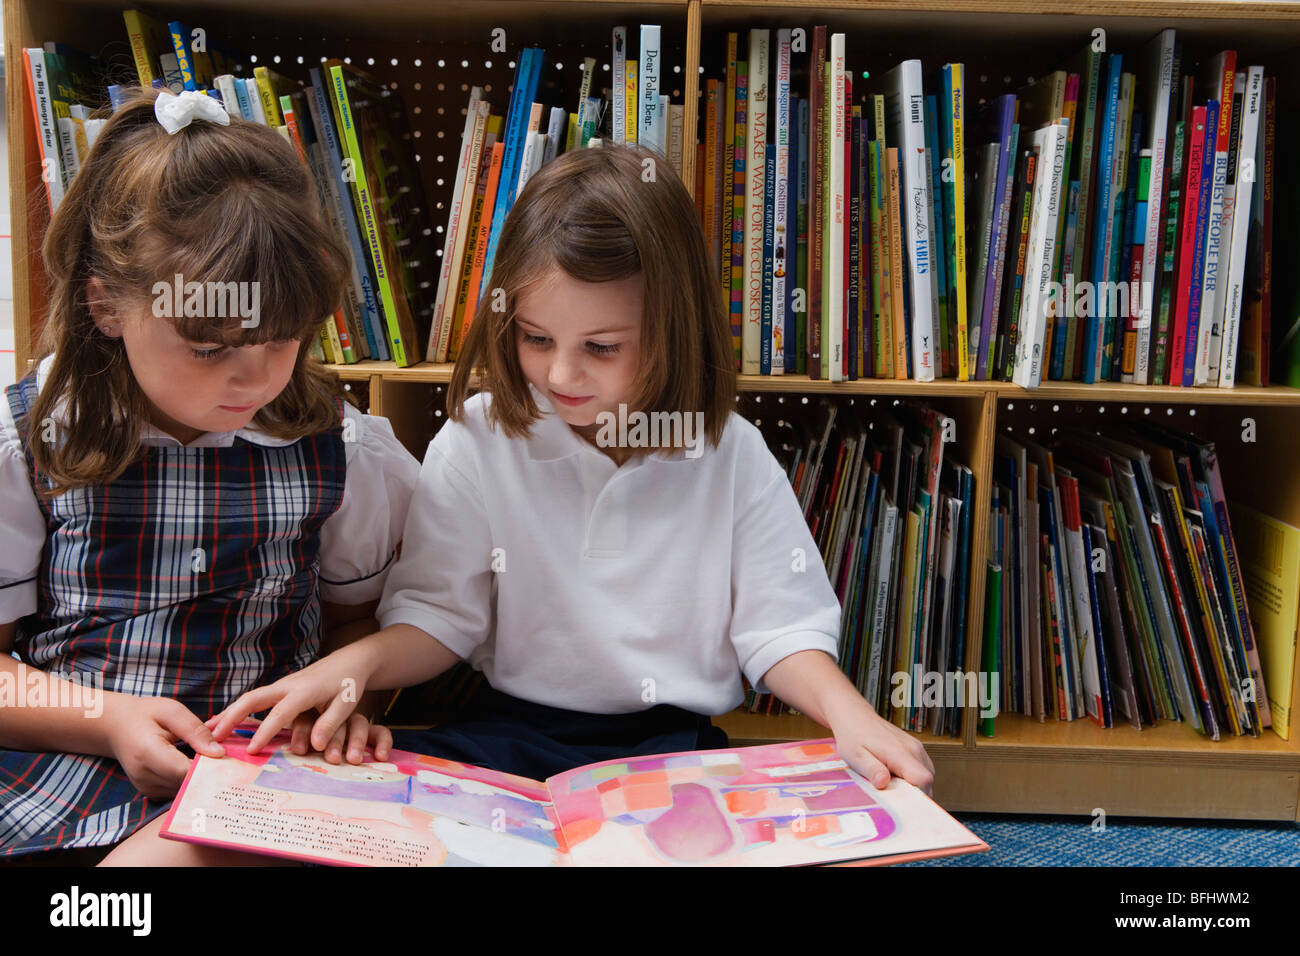 Little Girls Looking at a Picture Book - Stock Image